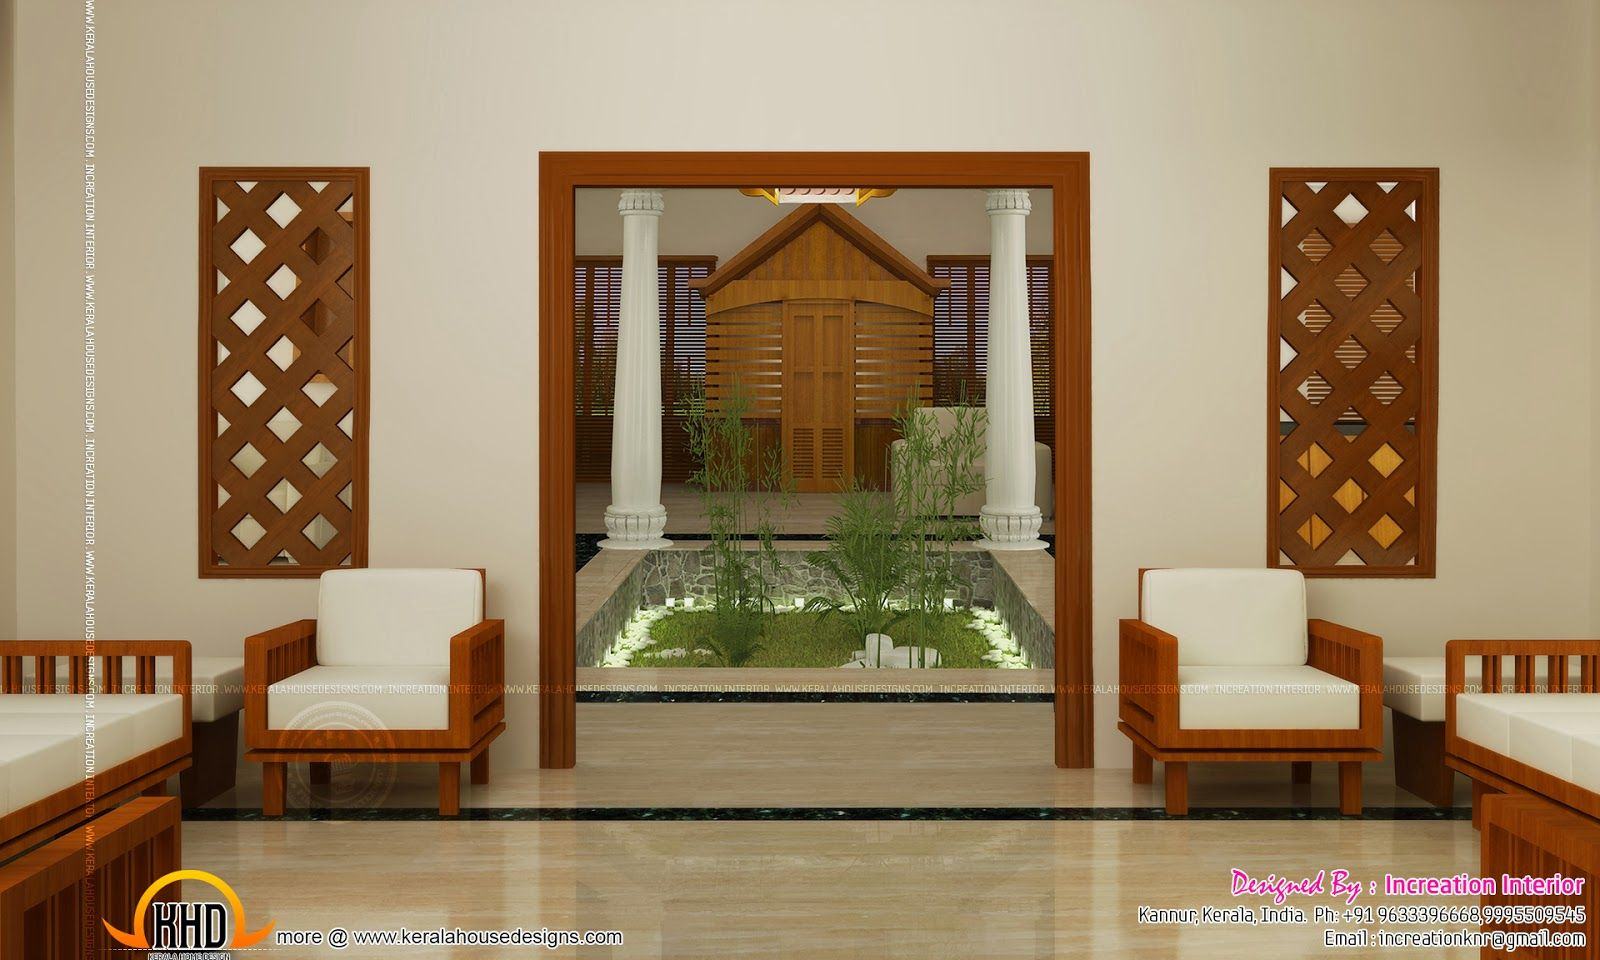 Beautiful houses interior in kerala google search for Different interior designs of houses